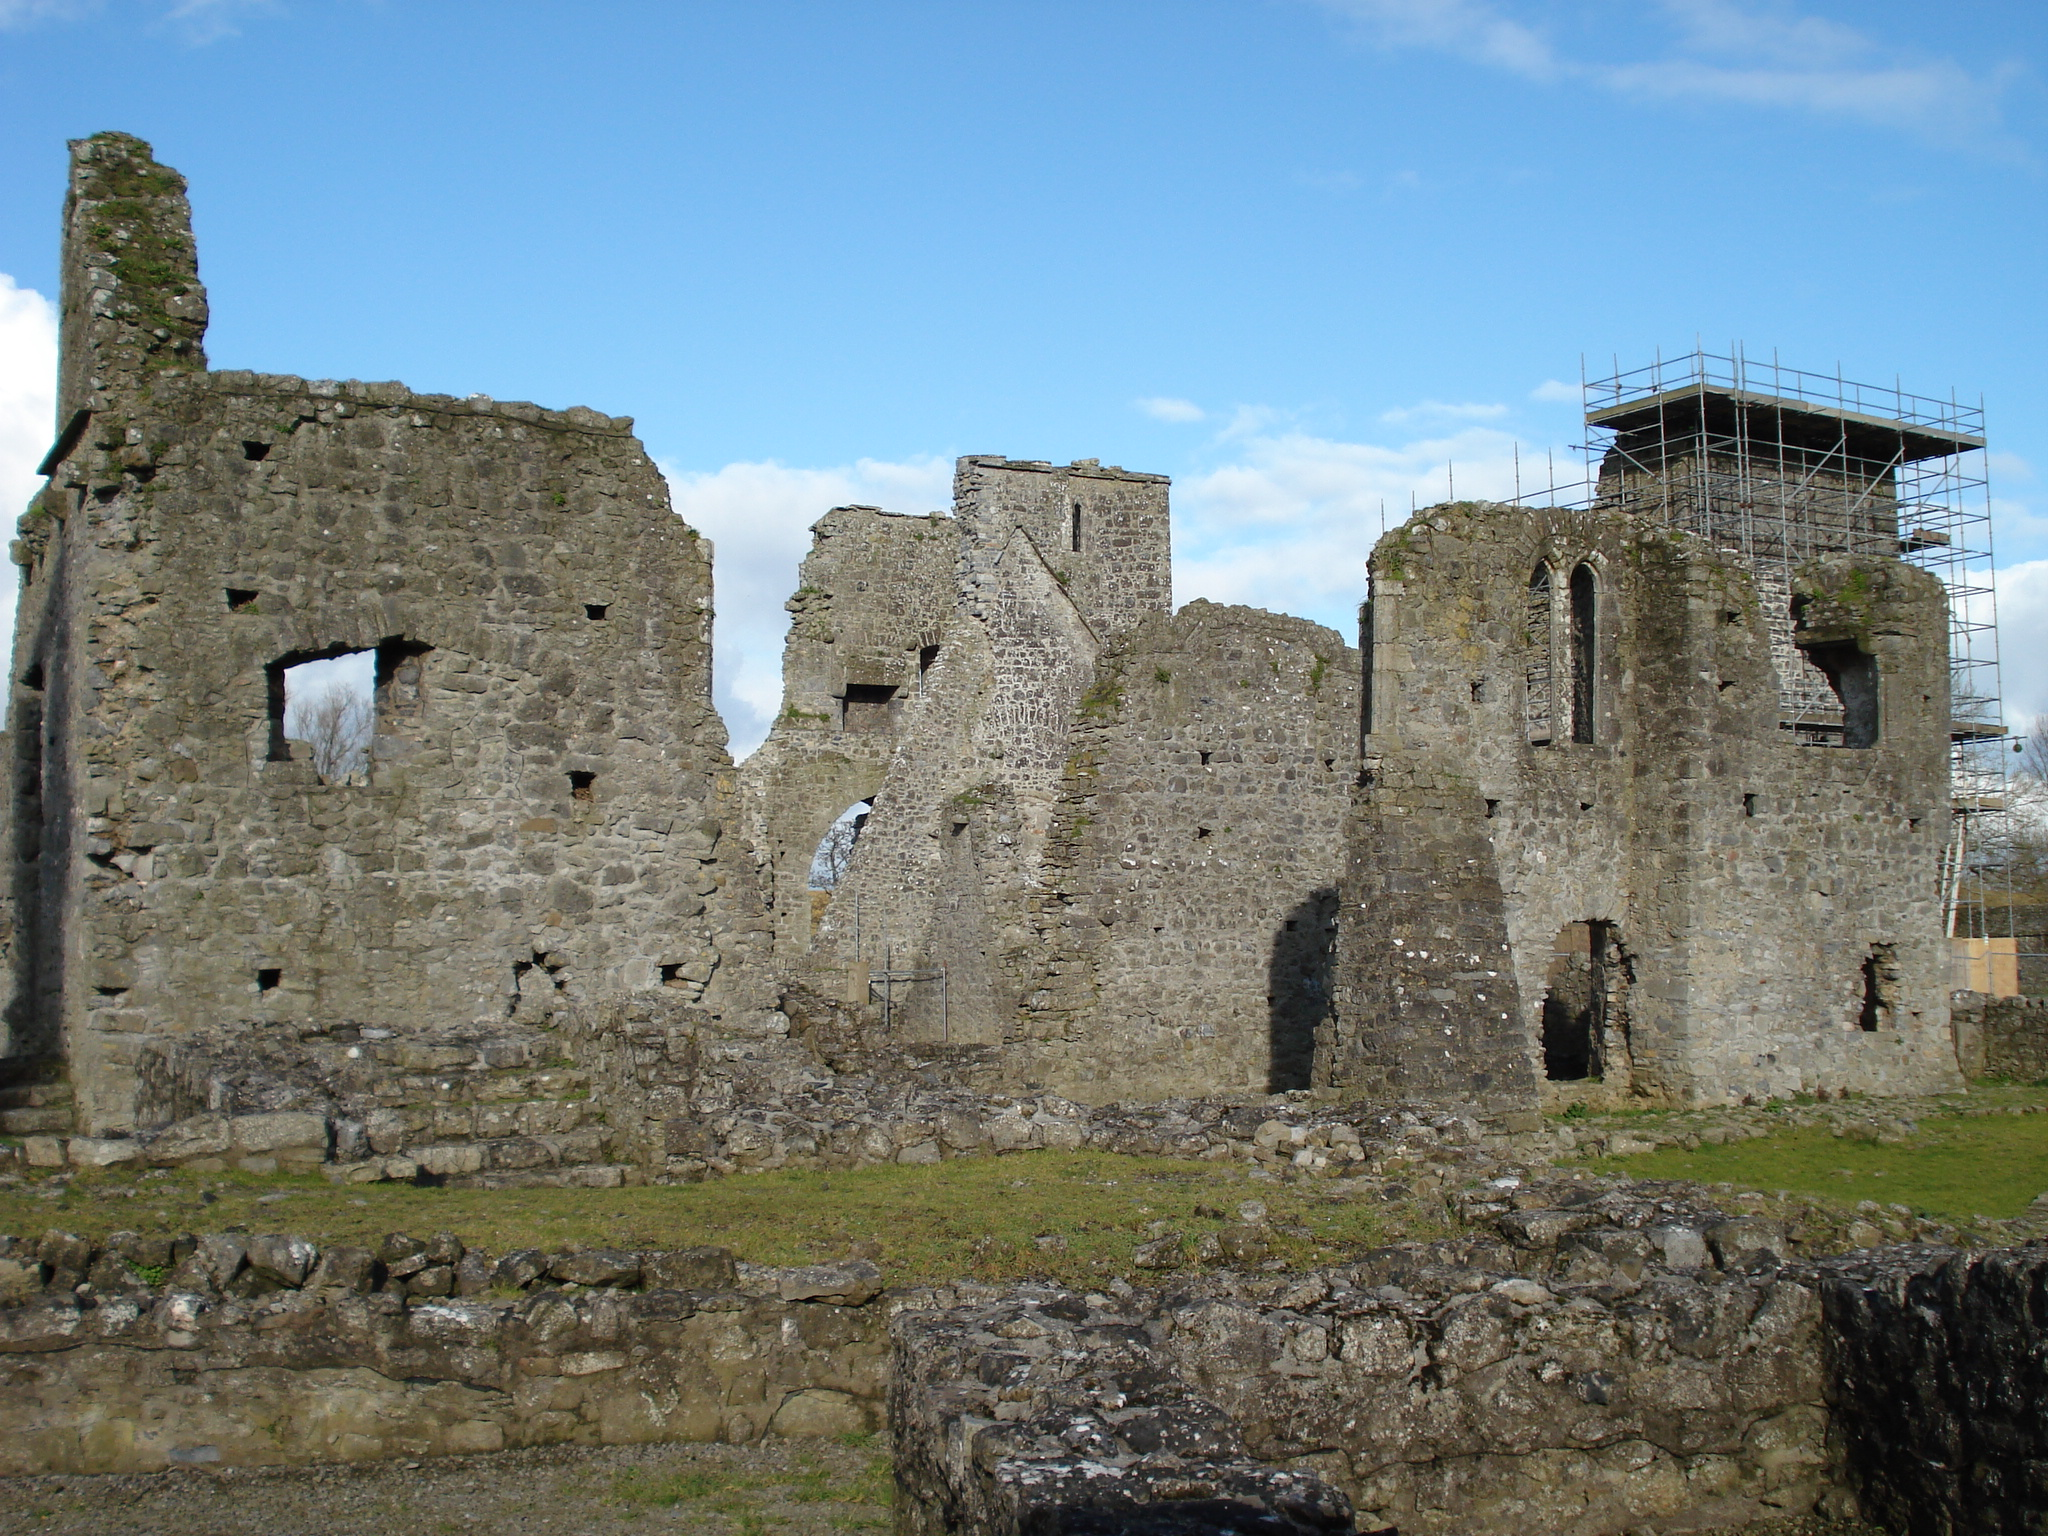 Kells Priory, Kilkenny – video footage